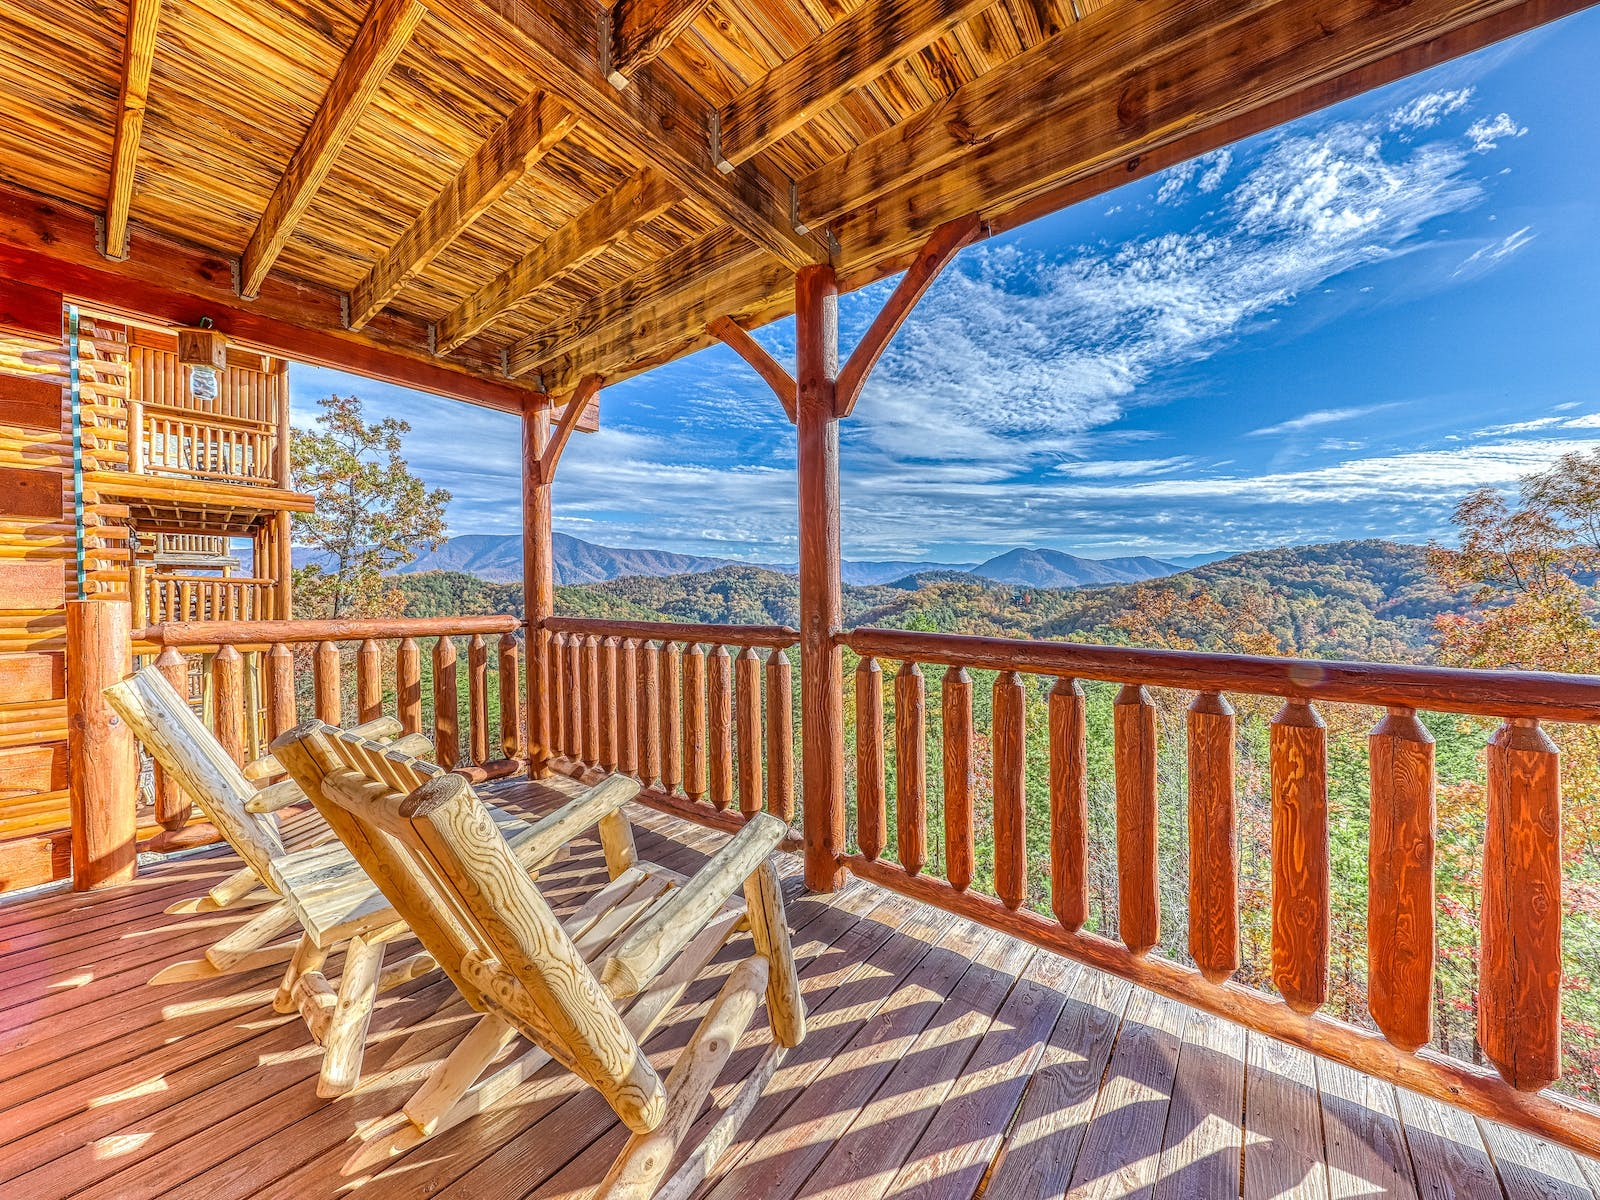 The balcony of a cabin rental with adirondack chairs with a Smoky Mountain view in Pigeon Forge, TN.